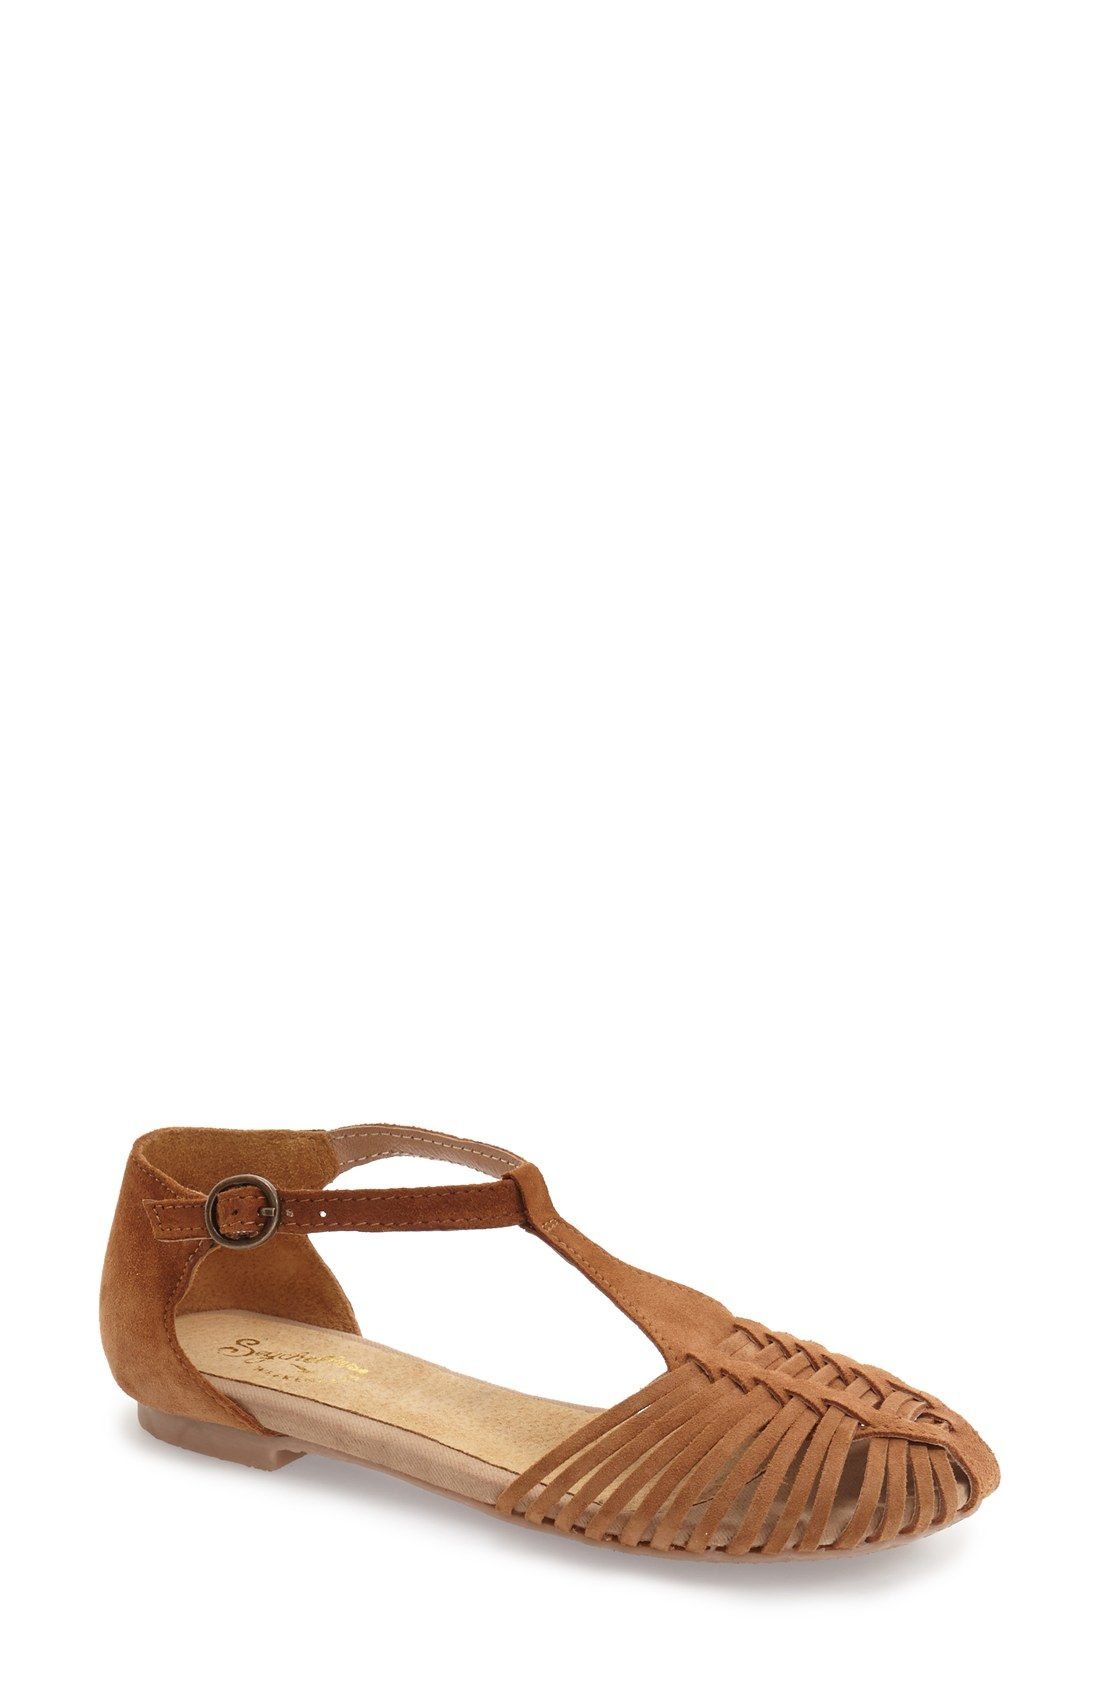 Seychelles 'Into Thin Air' Leather Huarache Flat Sandal (Women) | Nordstrom